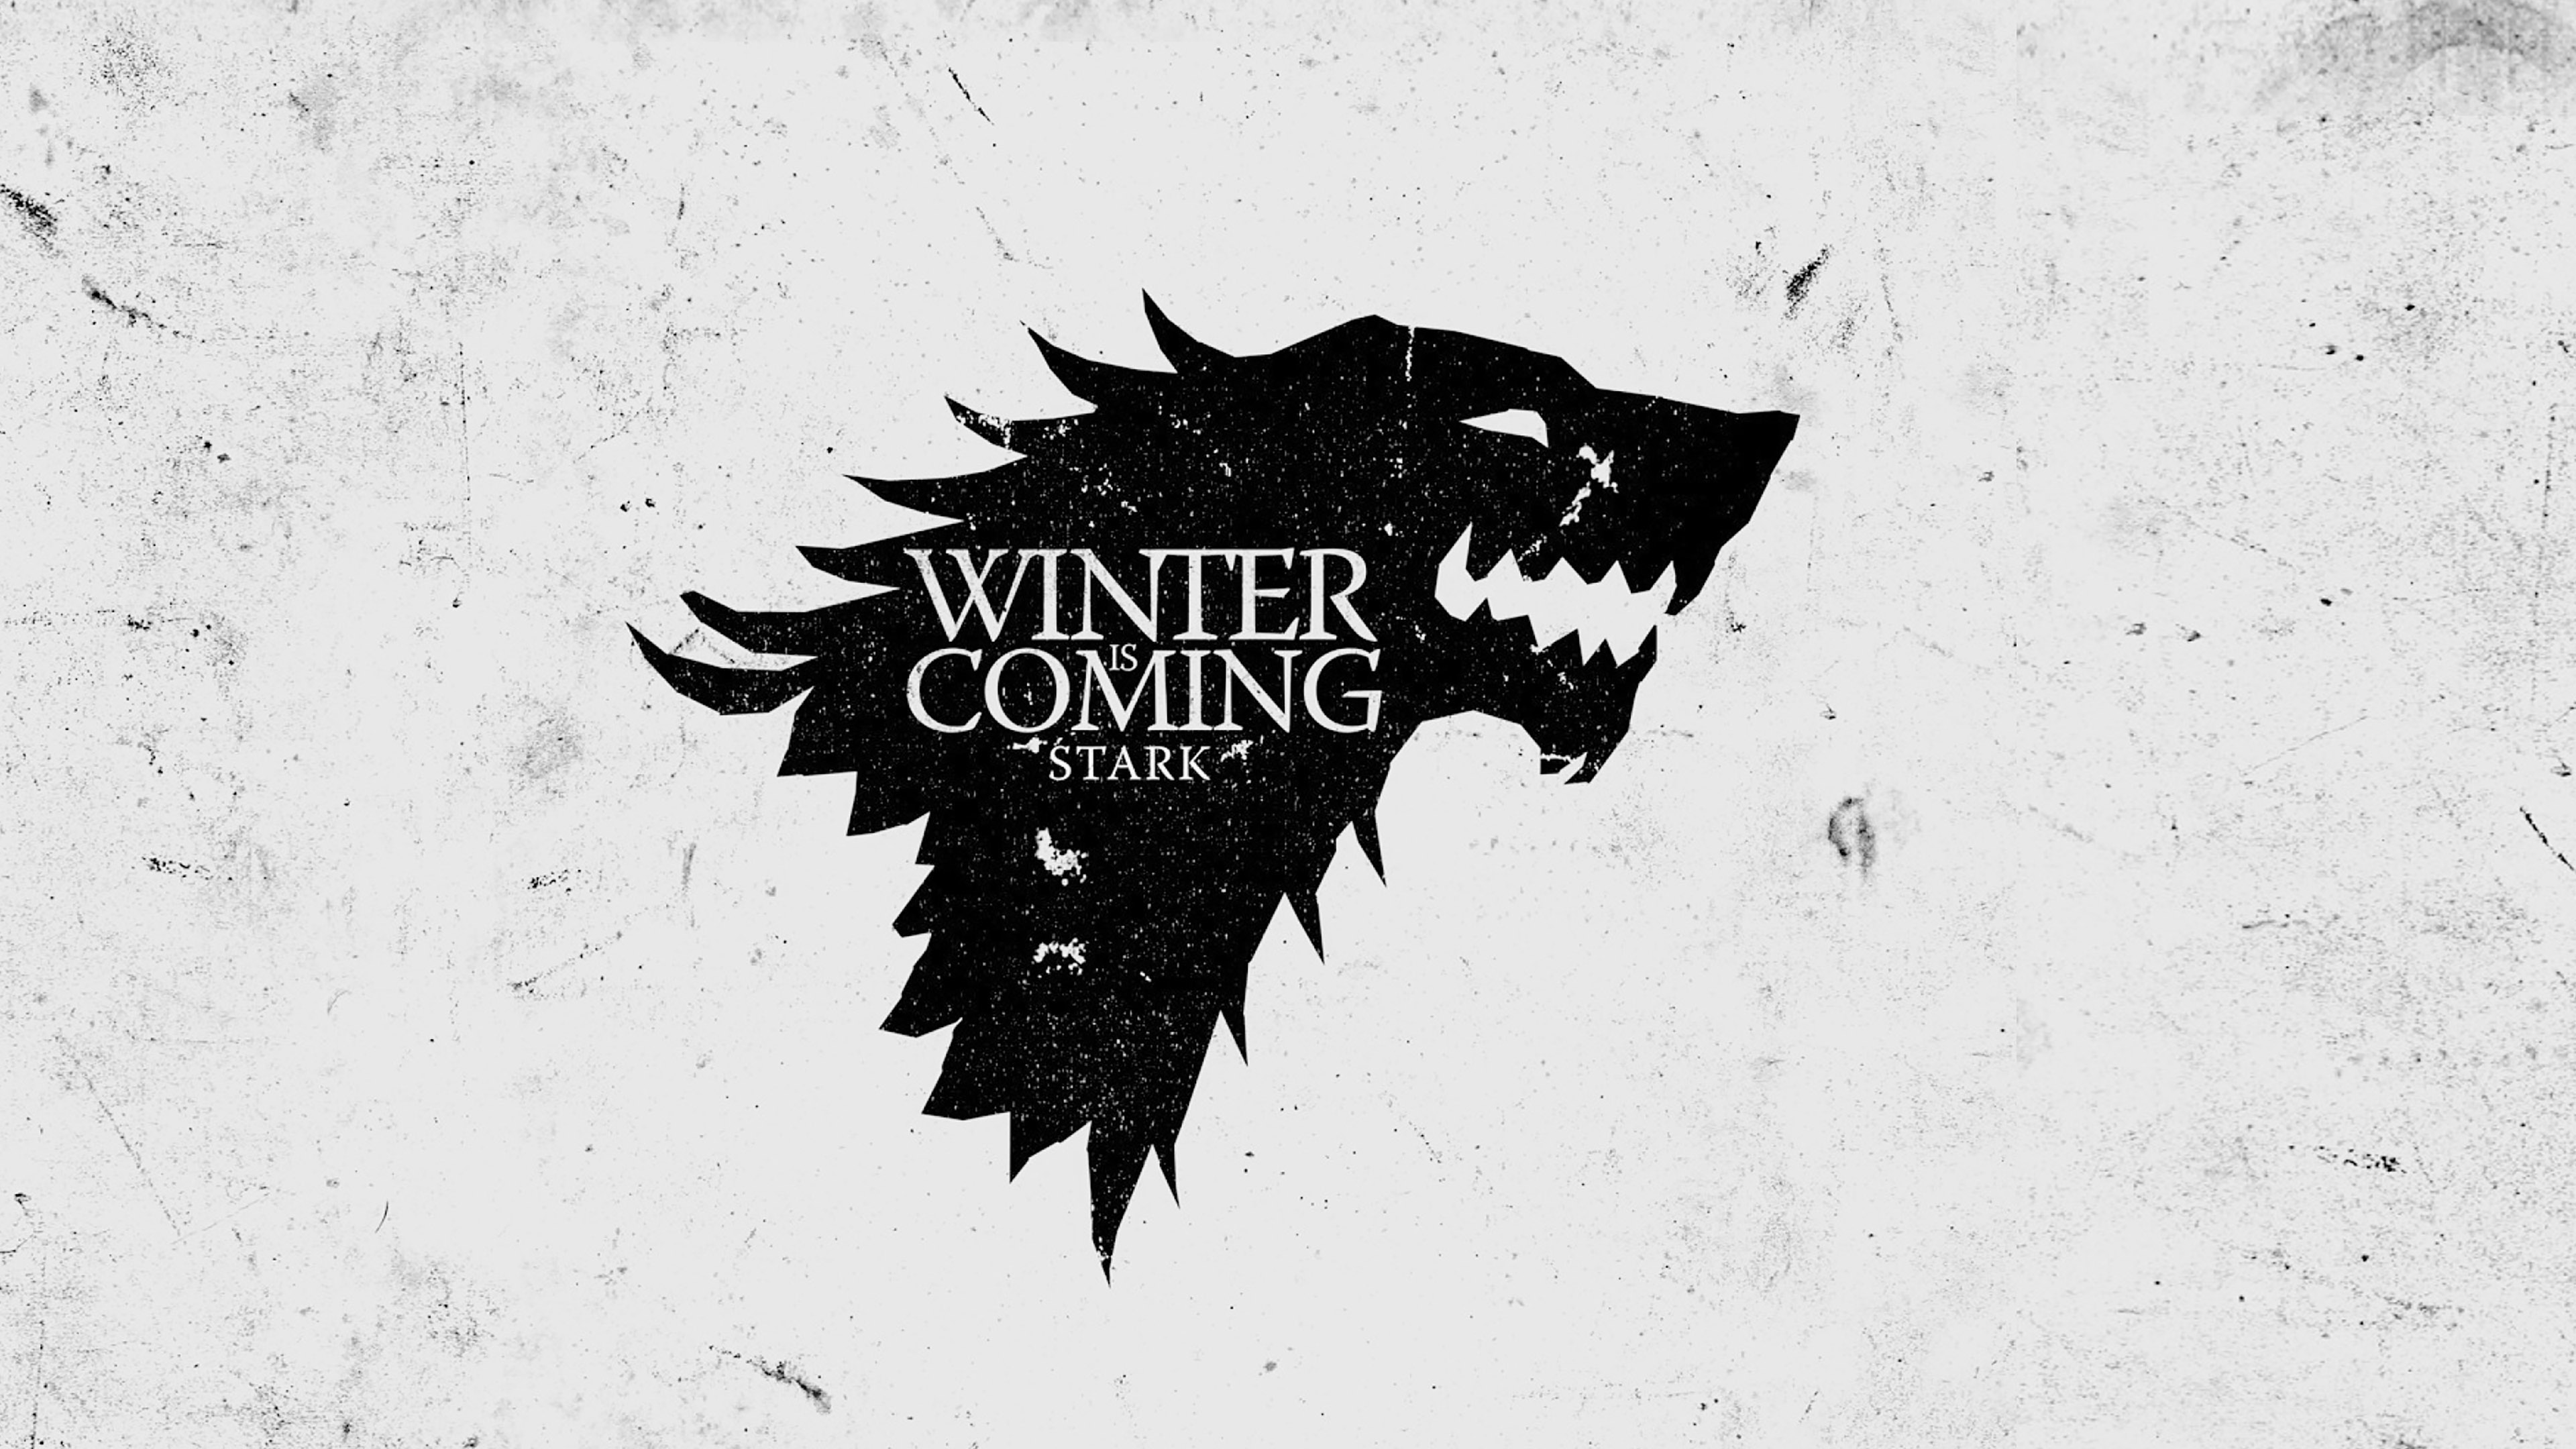 ab91 wallpaper game of thrones winter is coming white